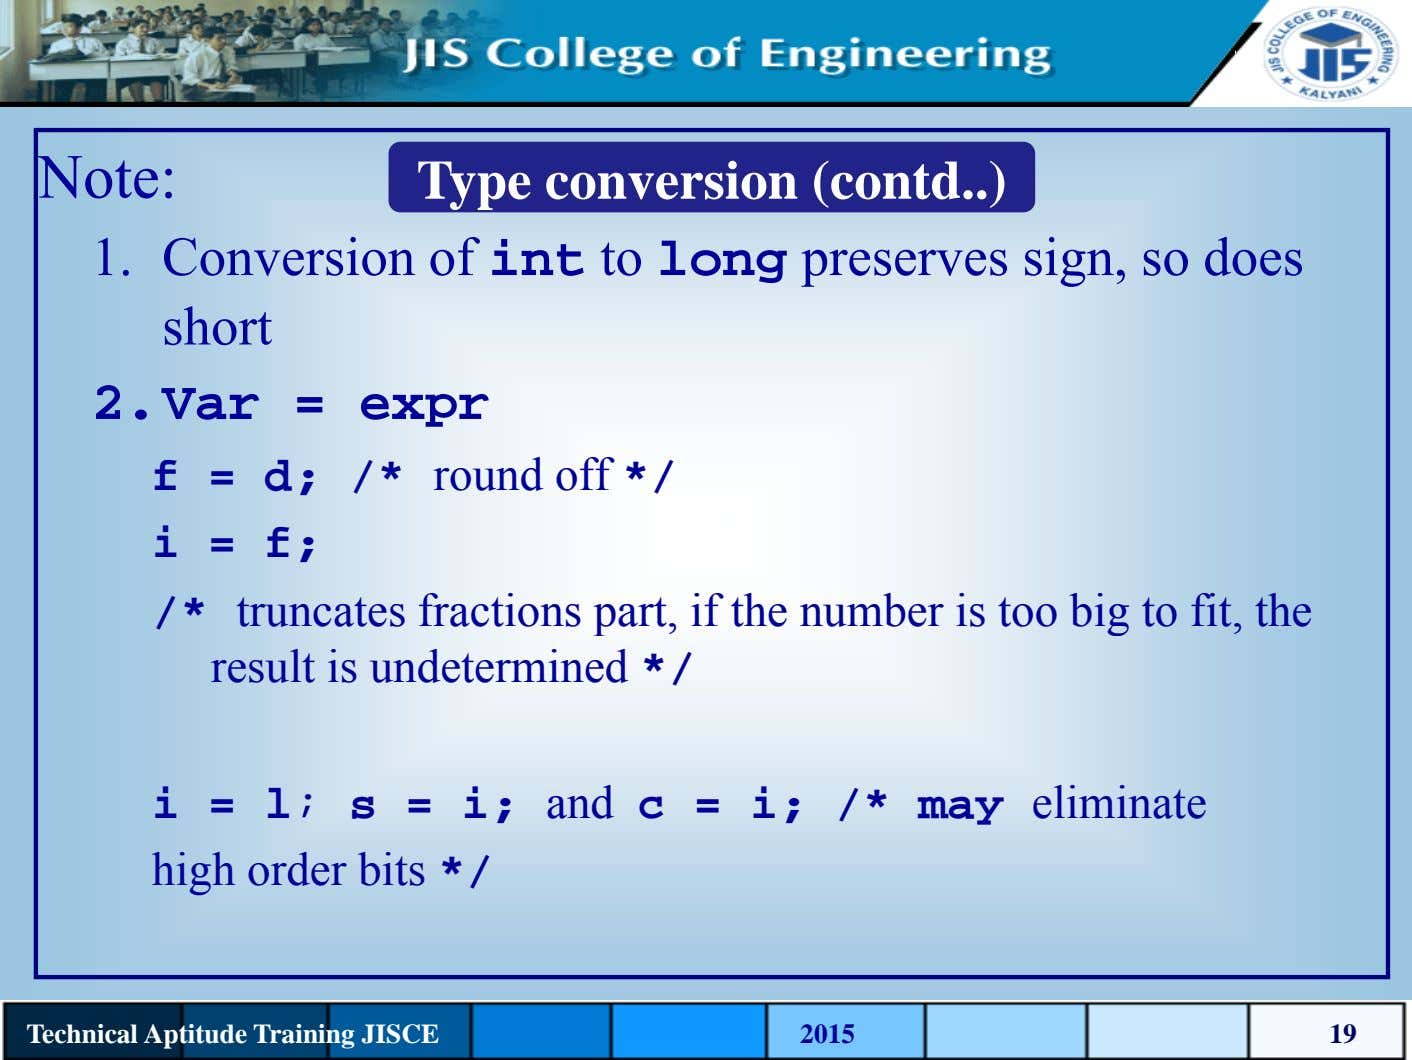 Note: Type conversion (contd ) 1. Conversion of int to long preserves sign, so does